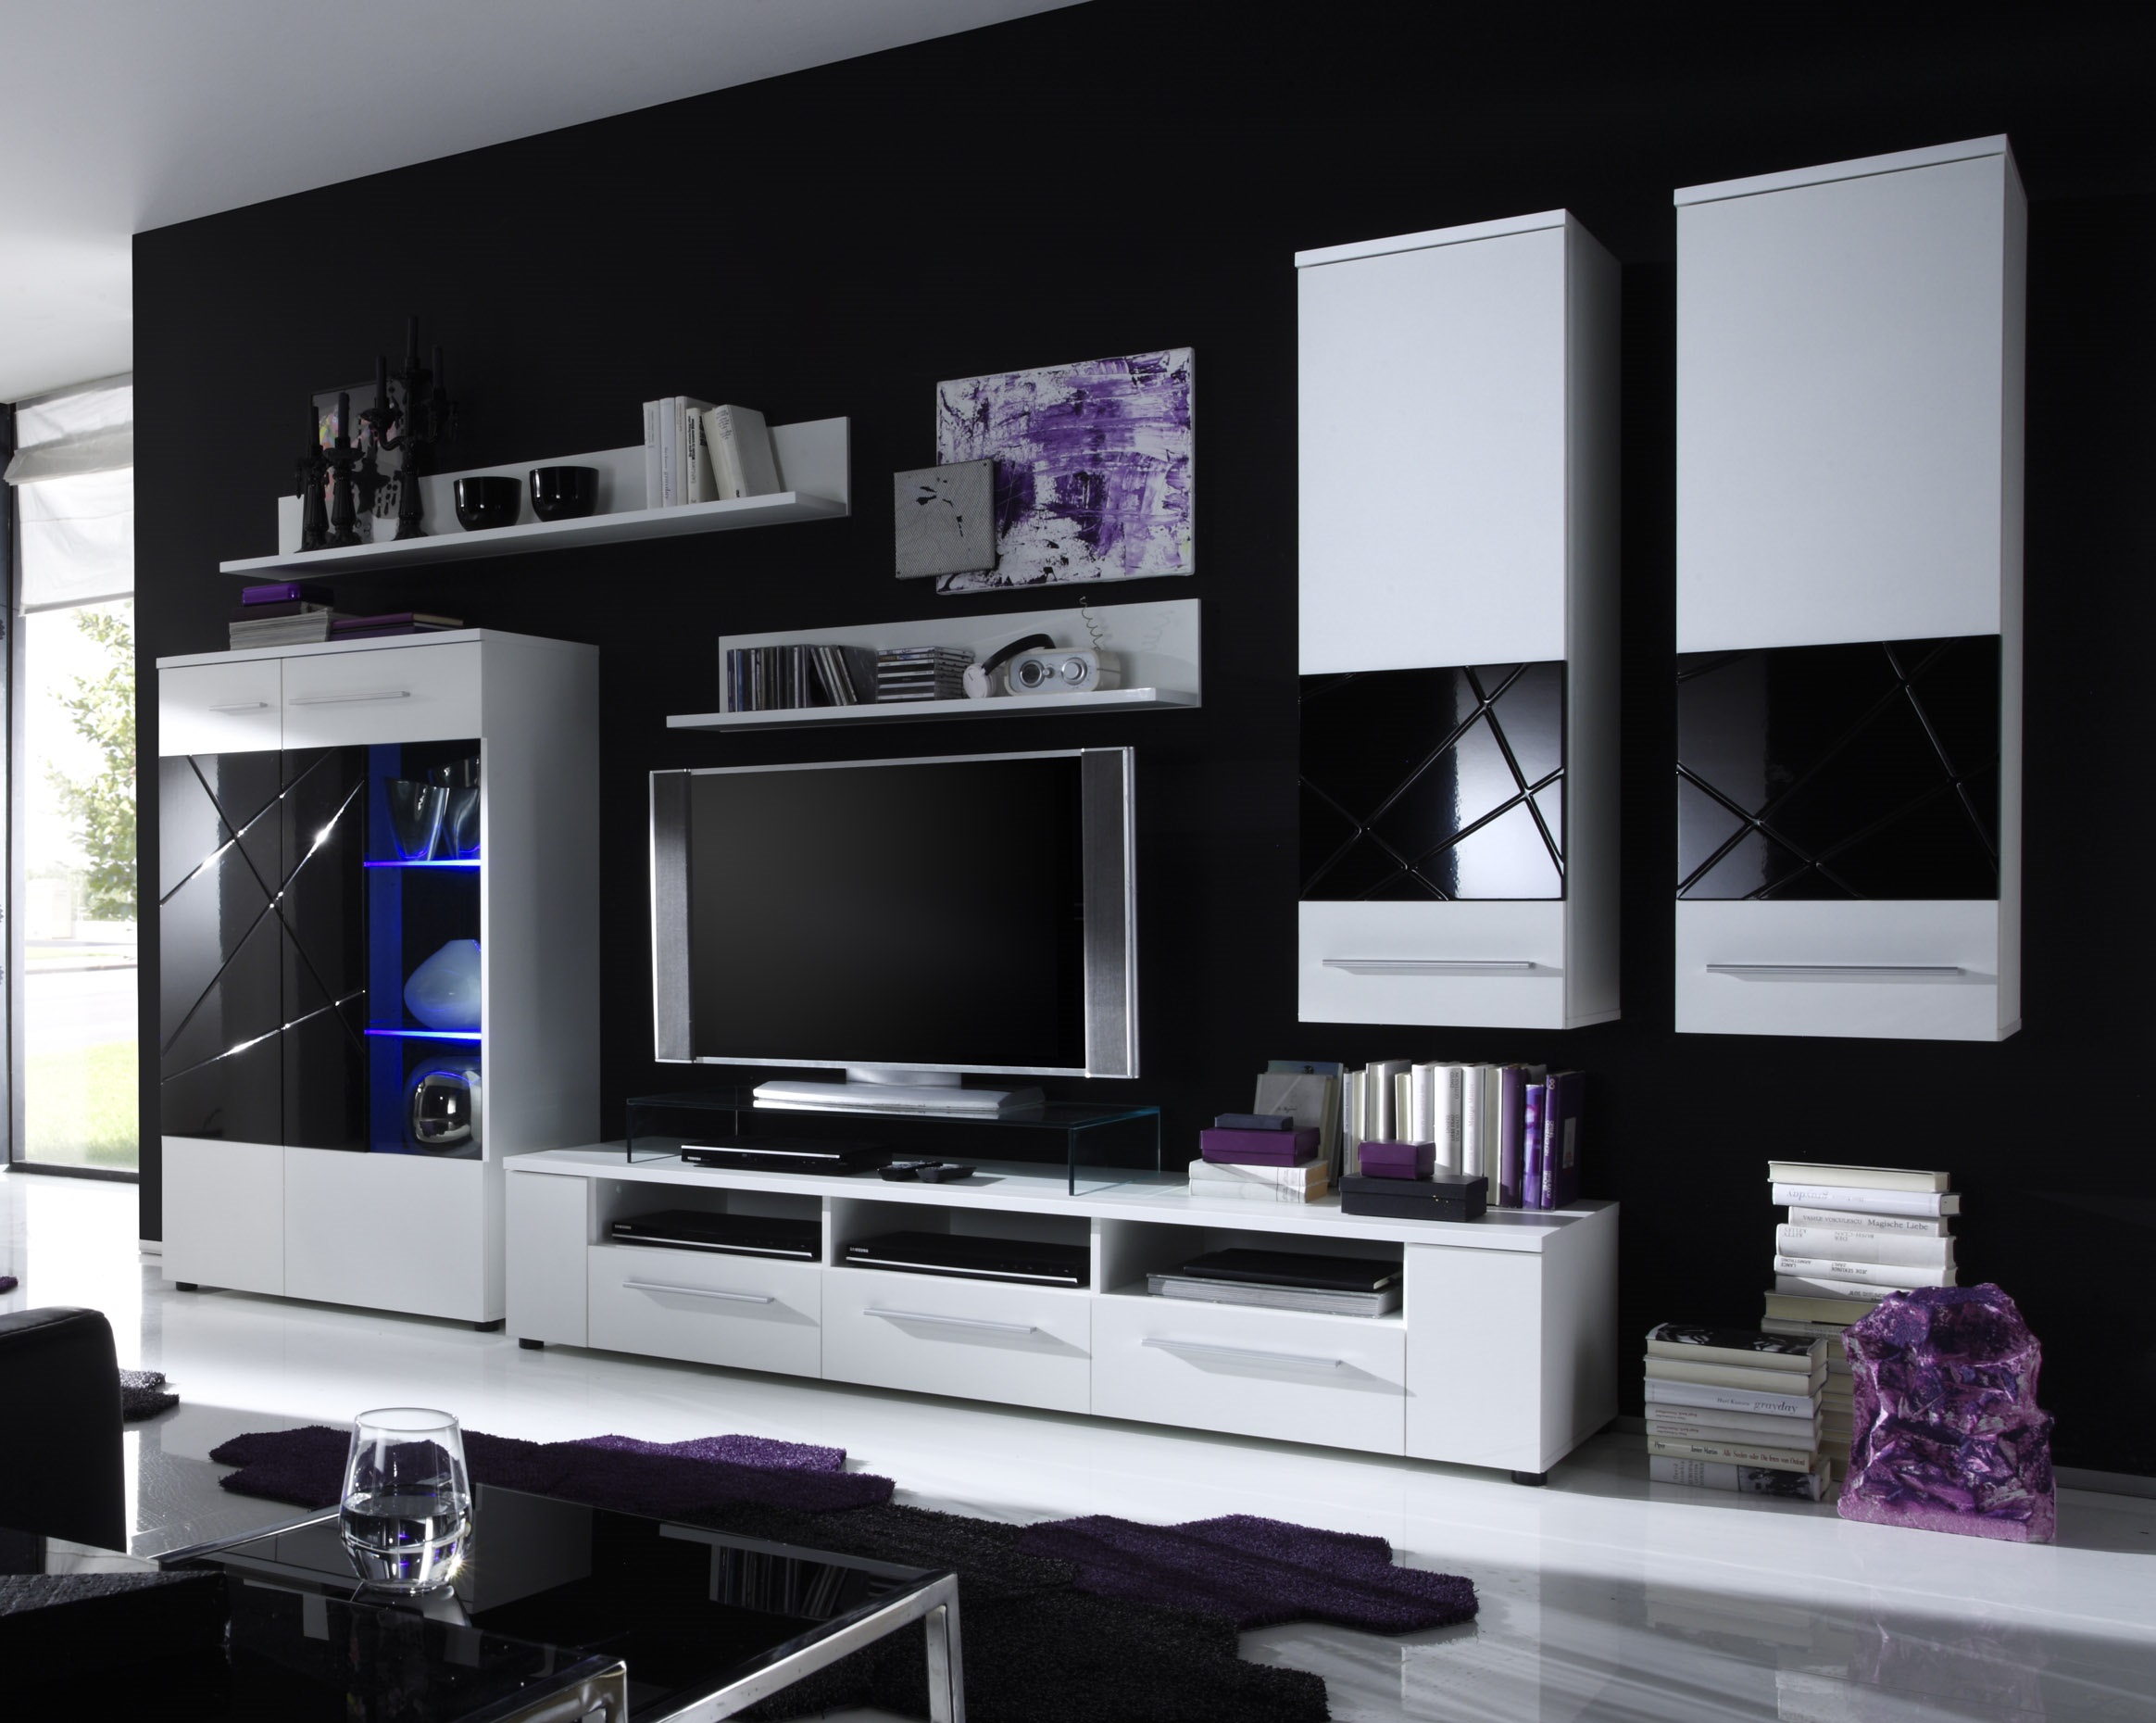 wohnw nde seite 36. Black Bedroom Furniture Sets. Home Design Ideas